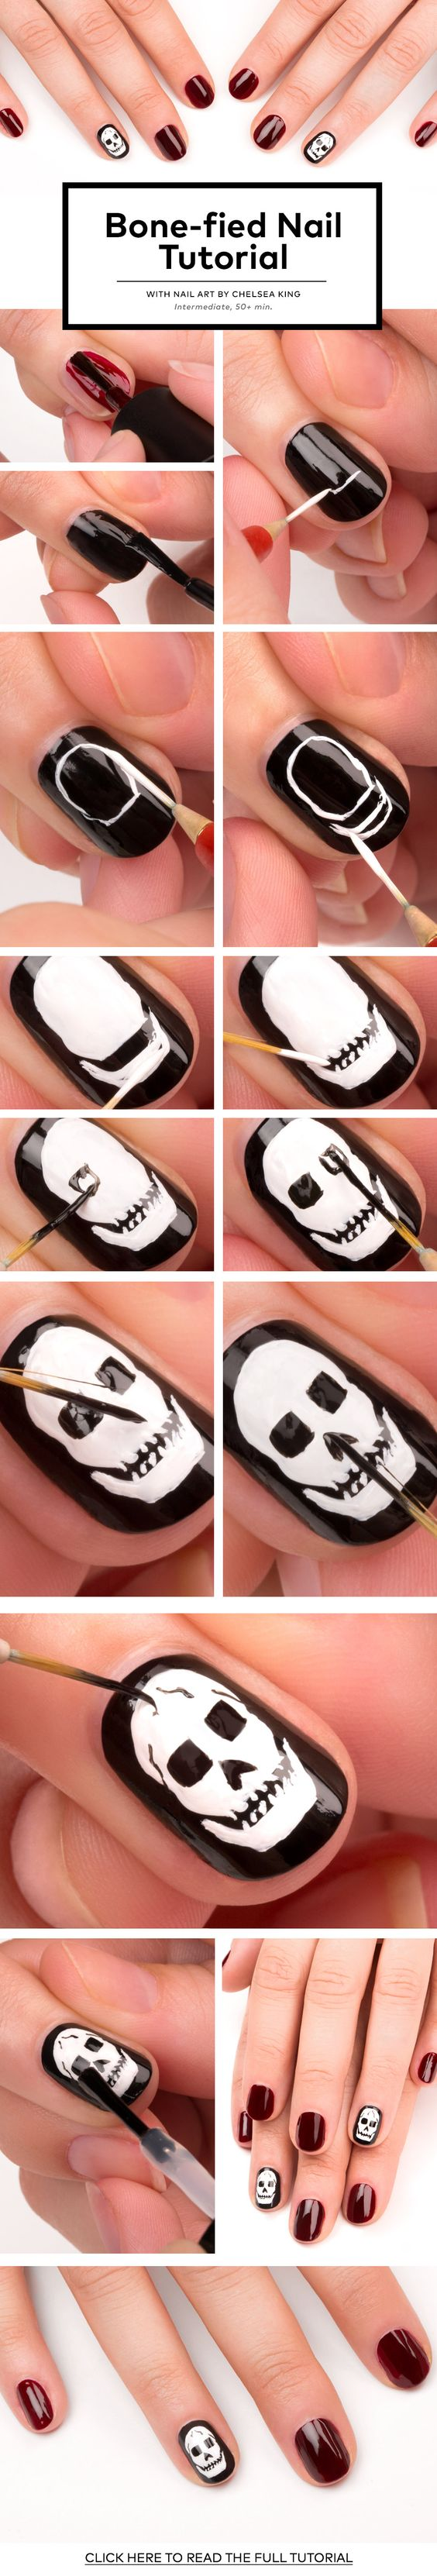 halloween-nail-art-tutorials-2016-12